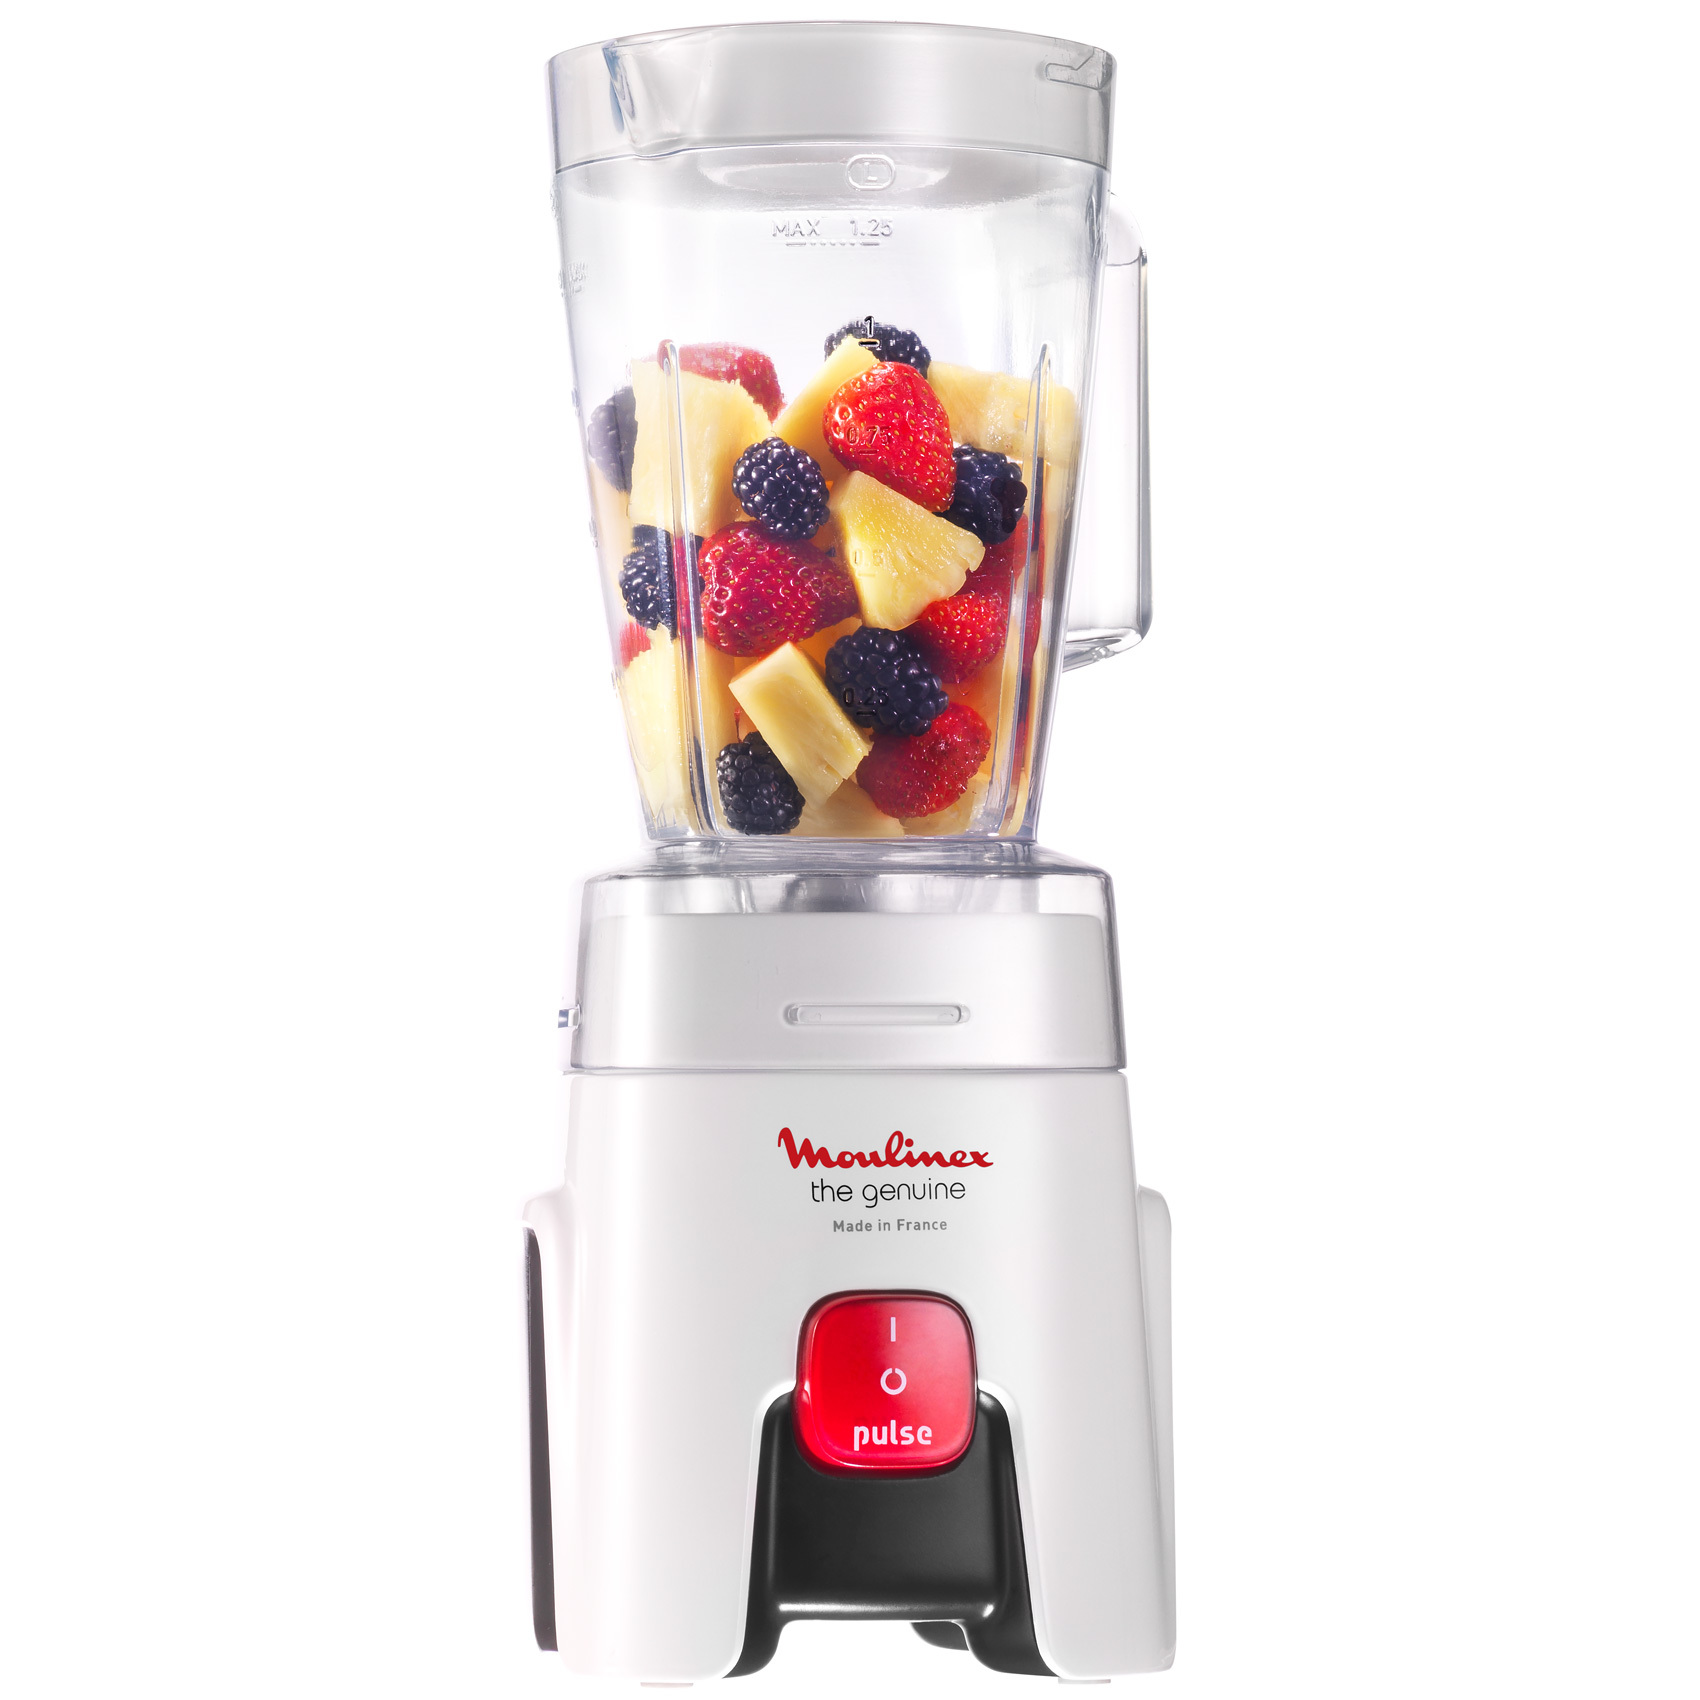 Buy Moulinex Blender Lm242027 Online In Uae Carrefour Uae